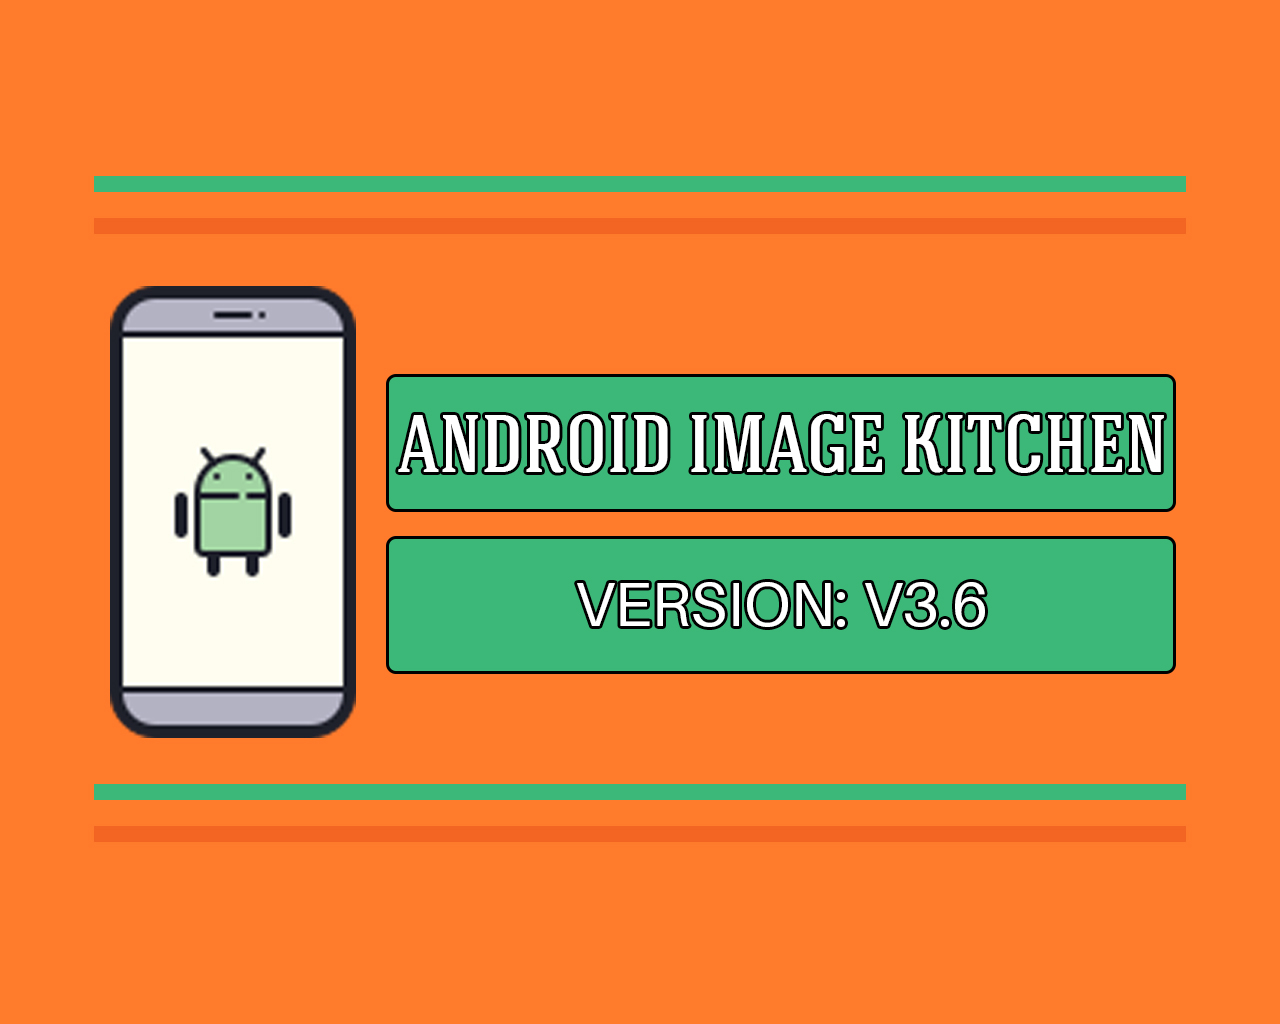 Android Image Kitchen v3.6 Full Version Free For Windows 7/8.1/10